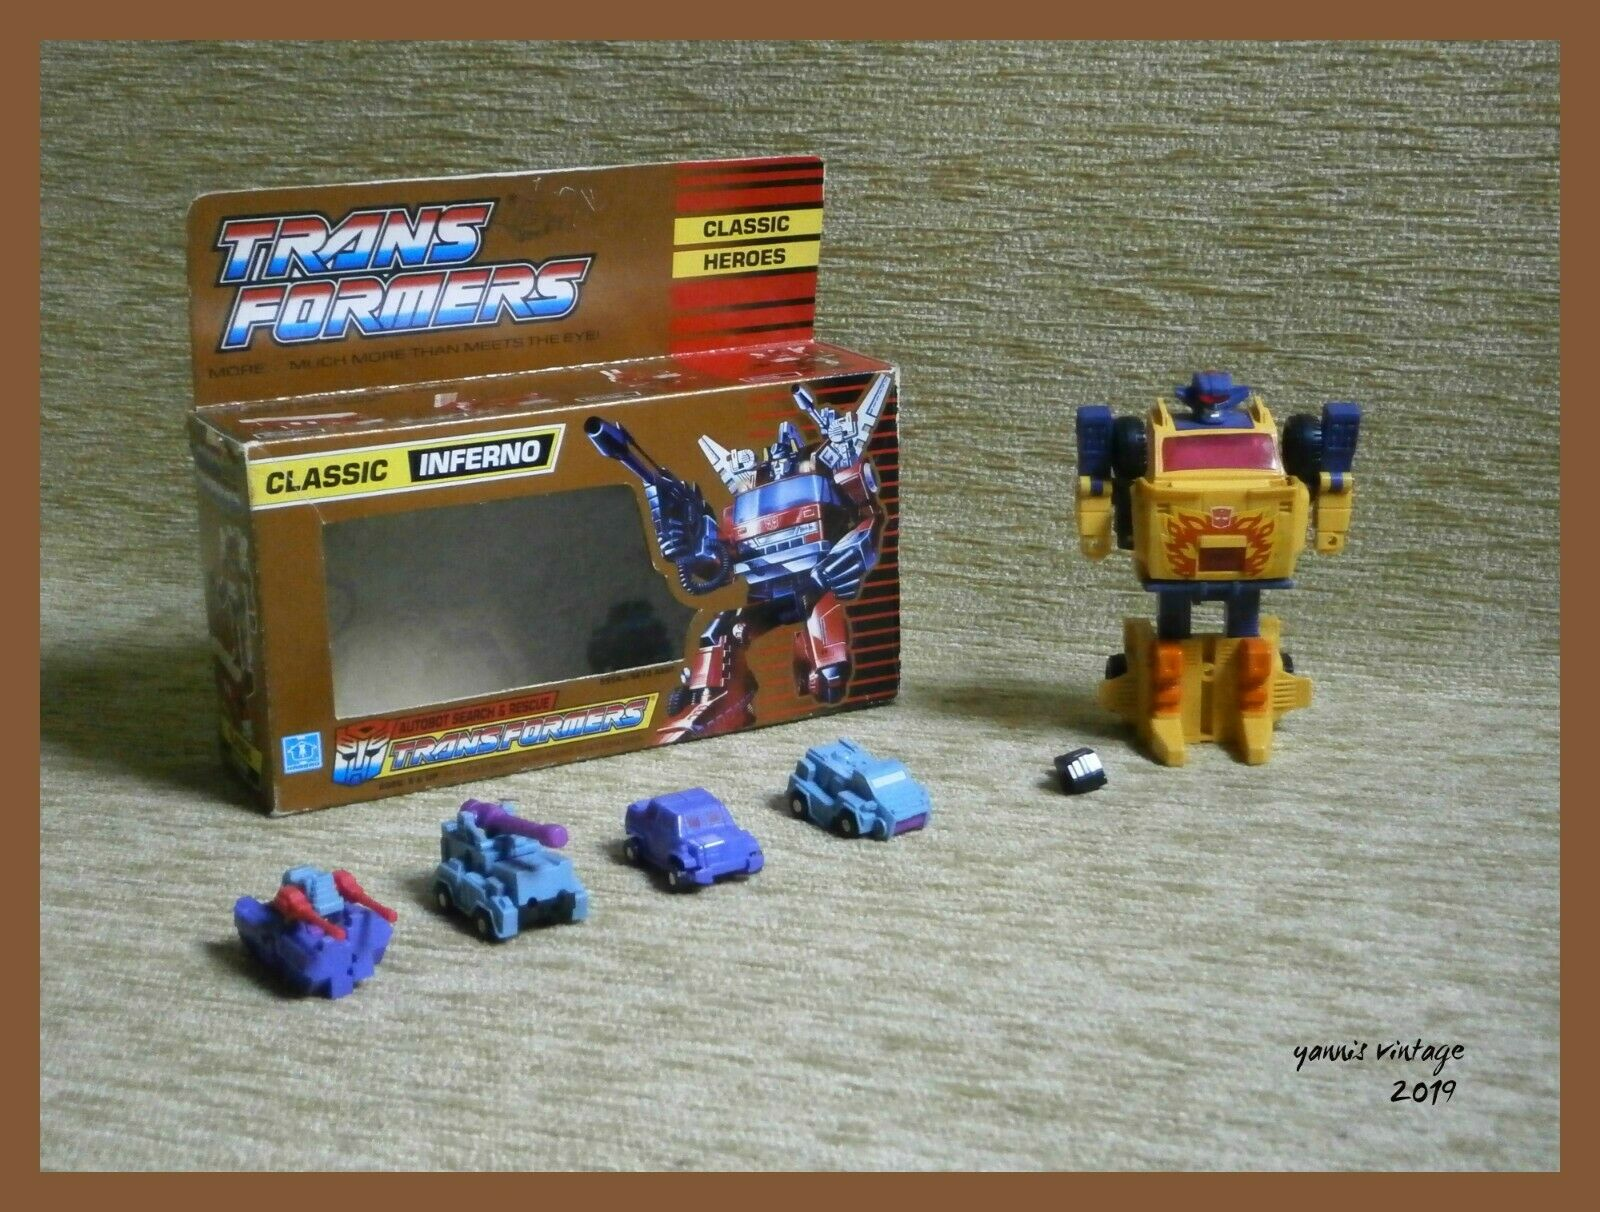 TRANSFORMERS CLASSIC INFERNO USED 1989 HASBRO + 4 MINI VEHICLES USED VTG RARE